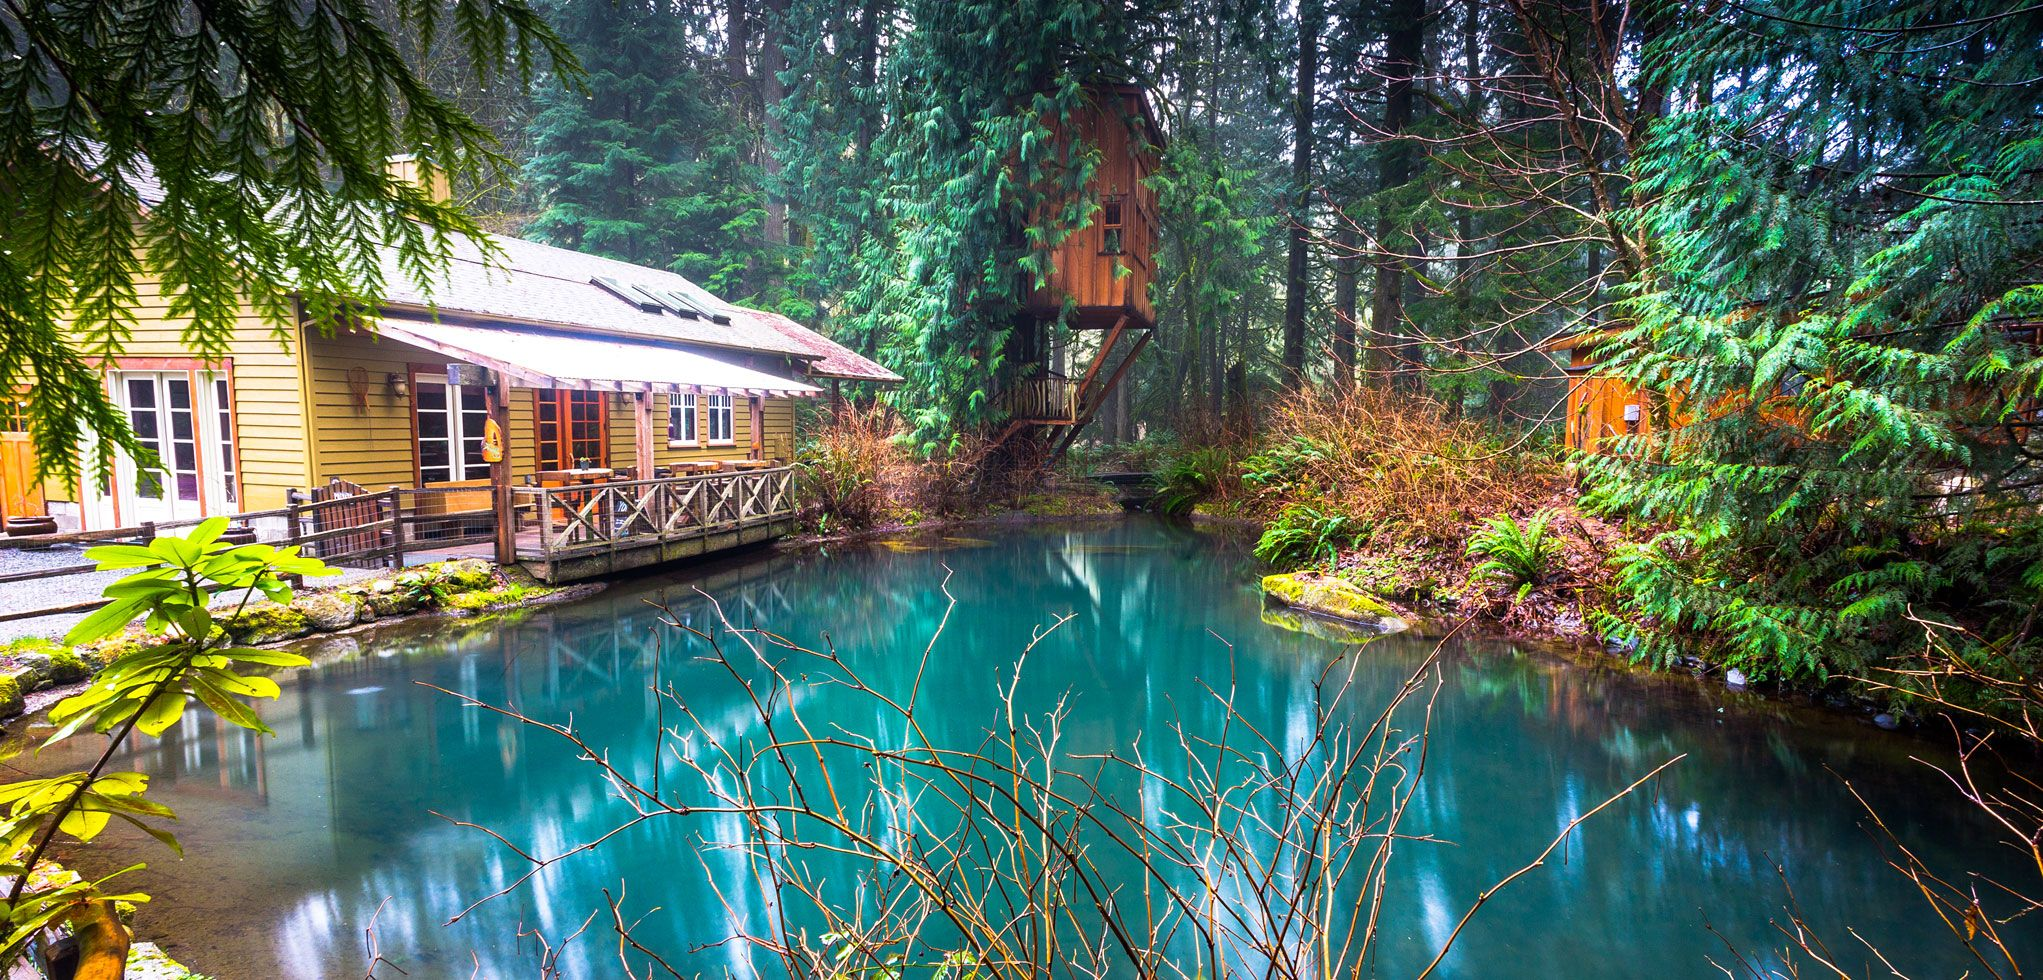 Pond Room Events At Treehouse Point In Fall City Washington